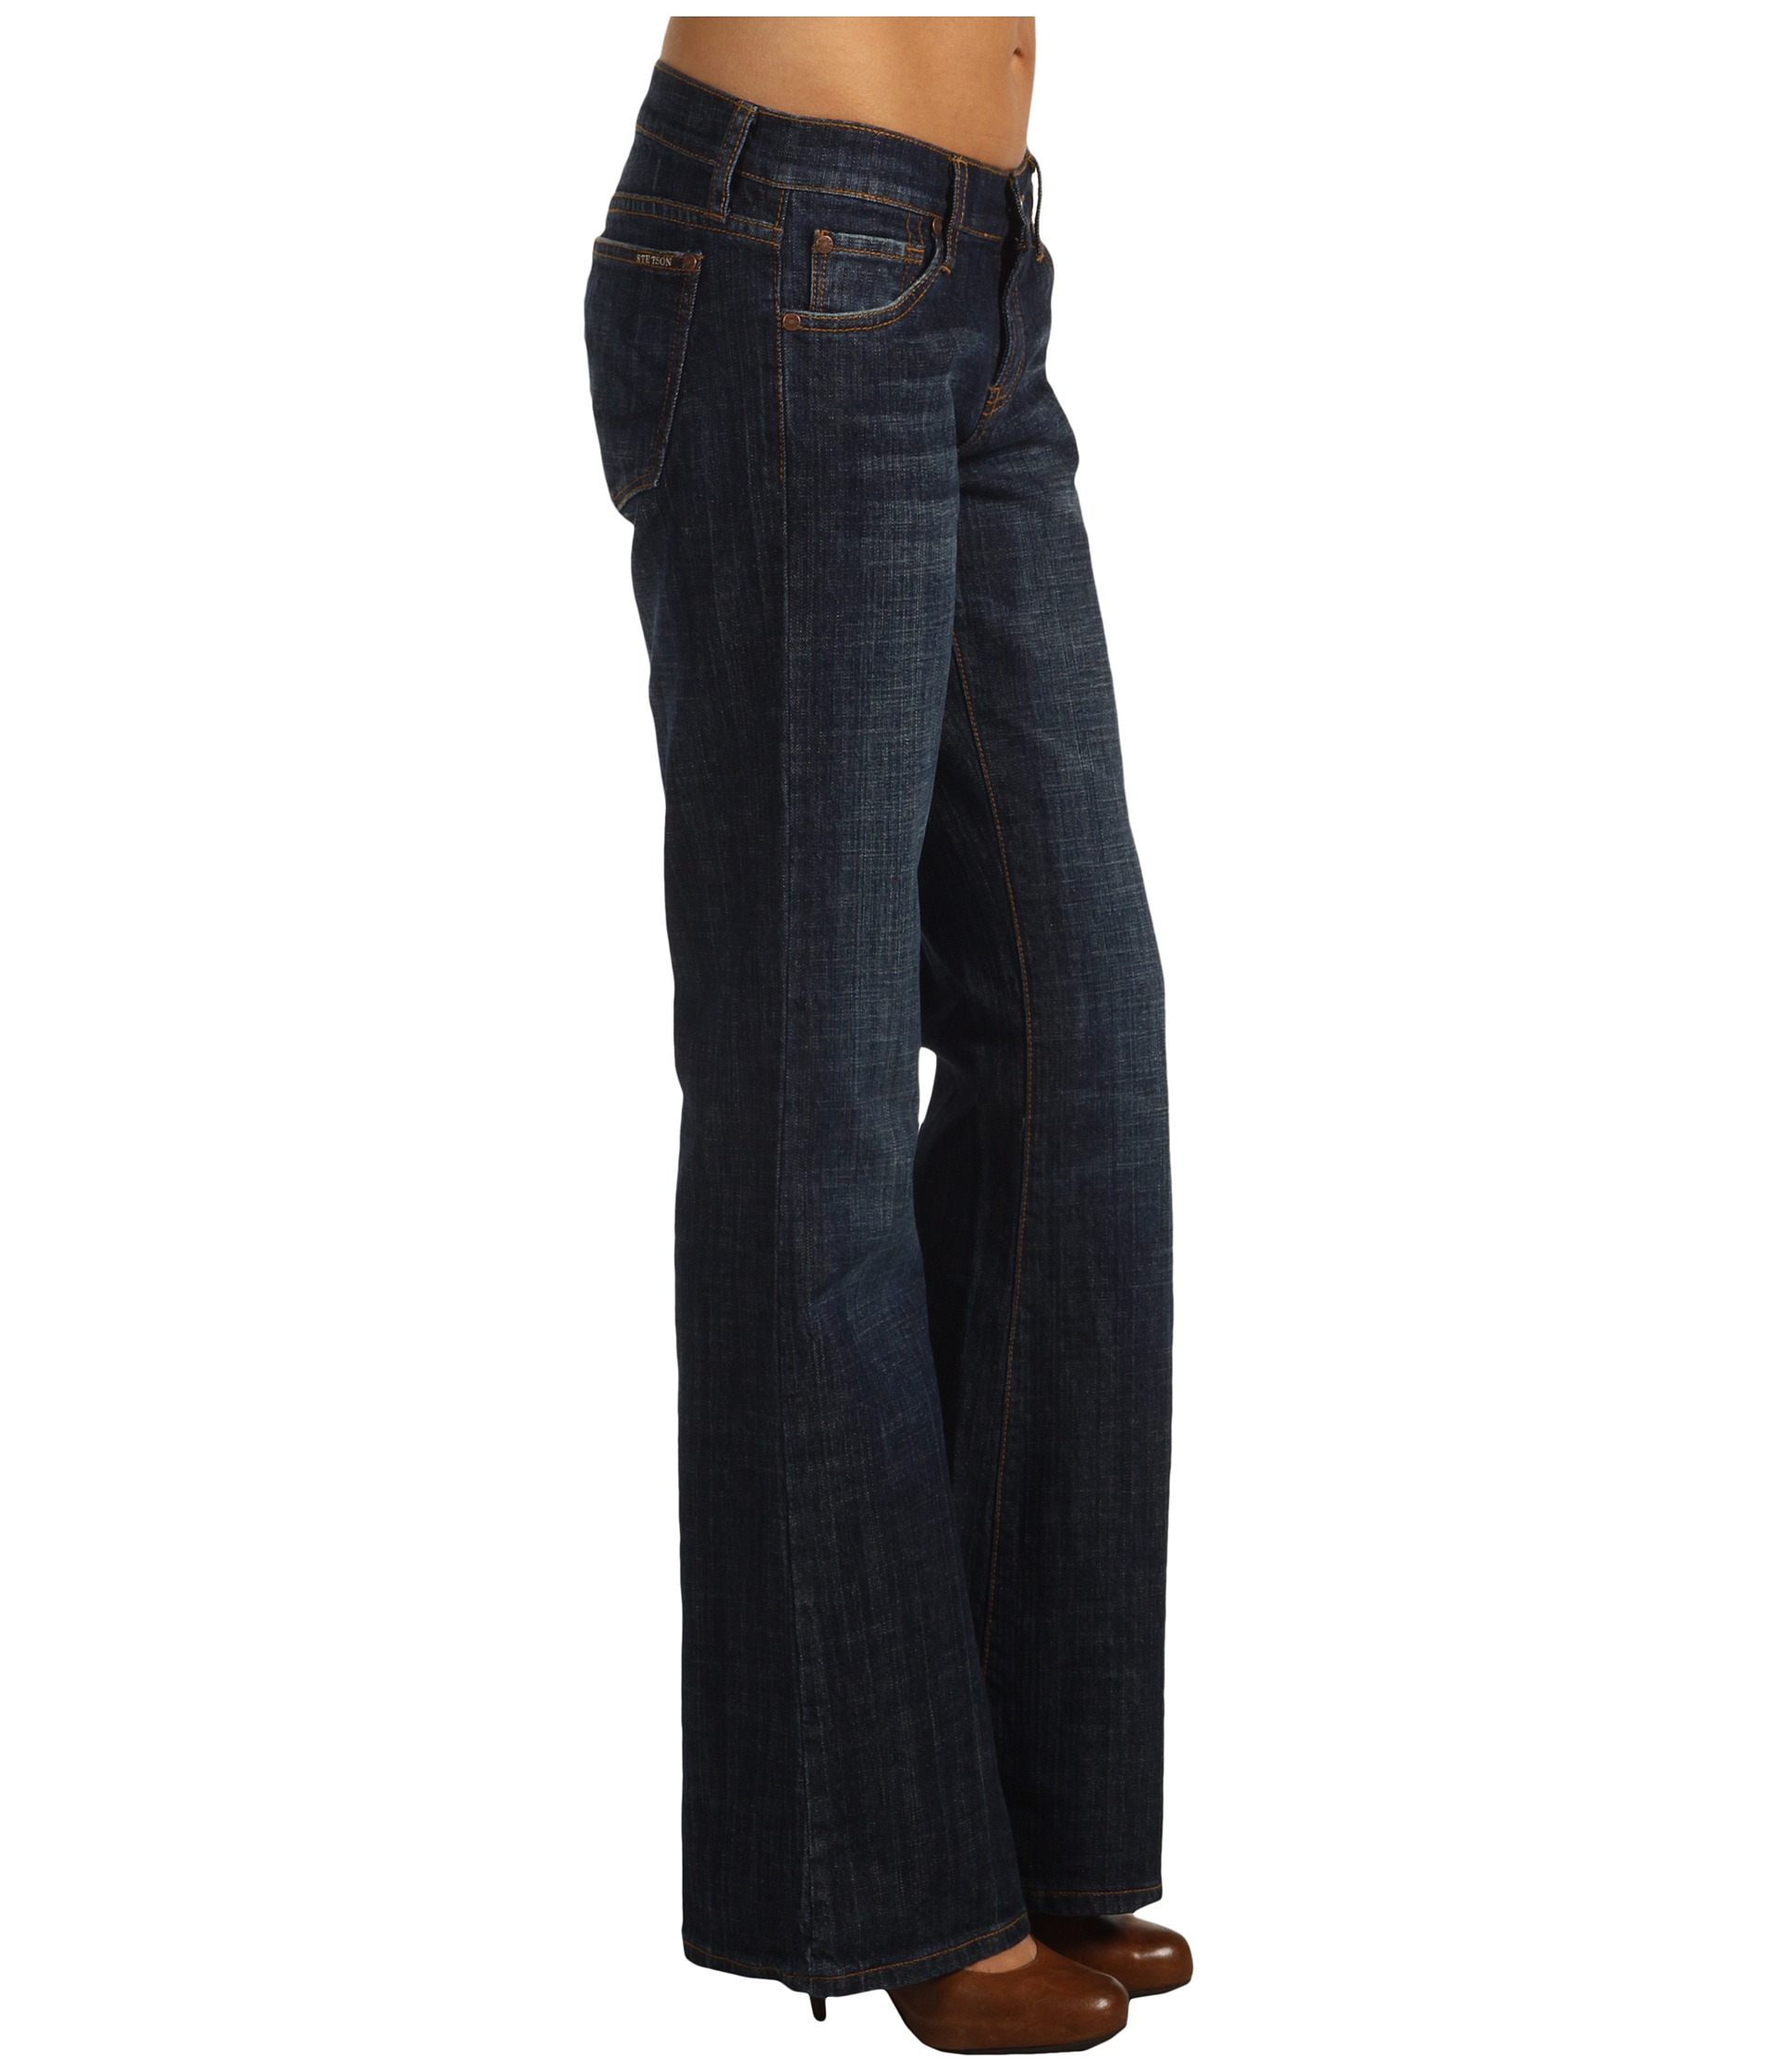 Stetson 816 Classic Boot Cut Jean at Zappos.com